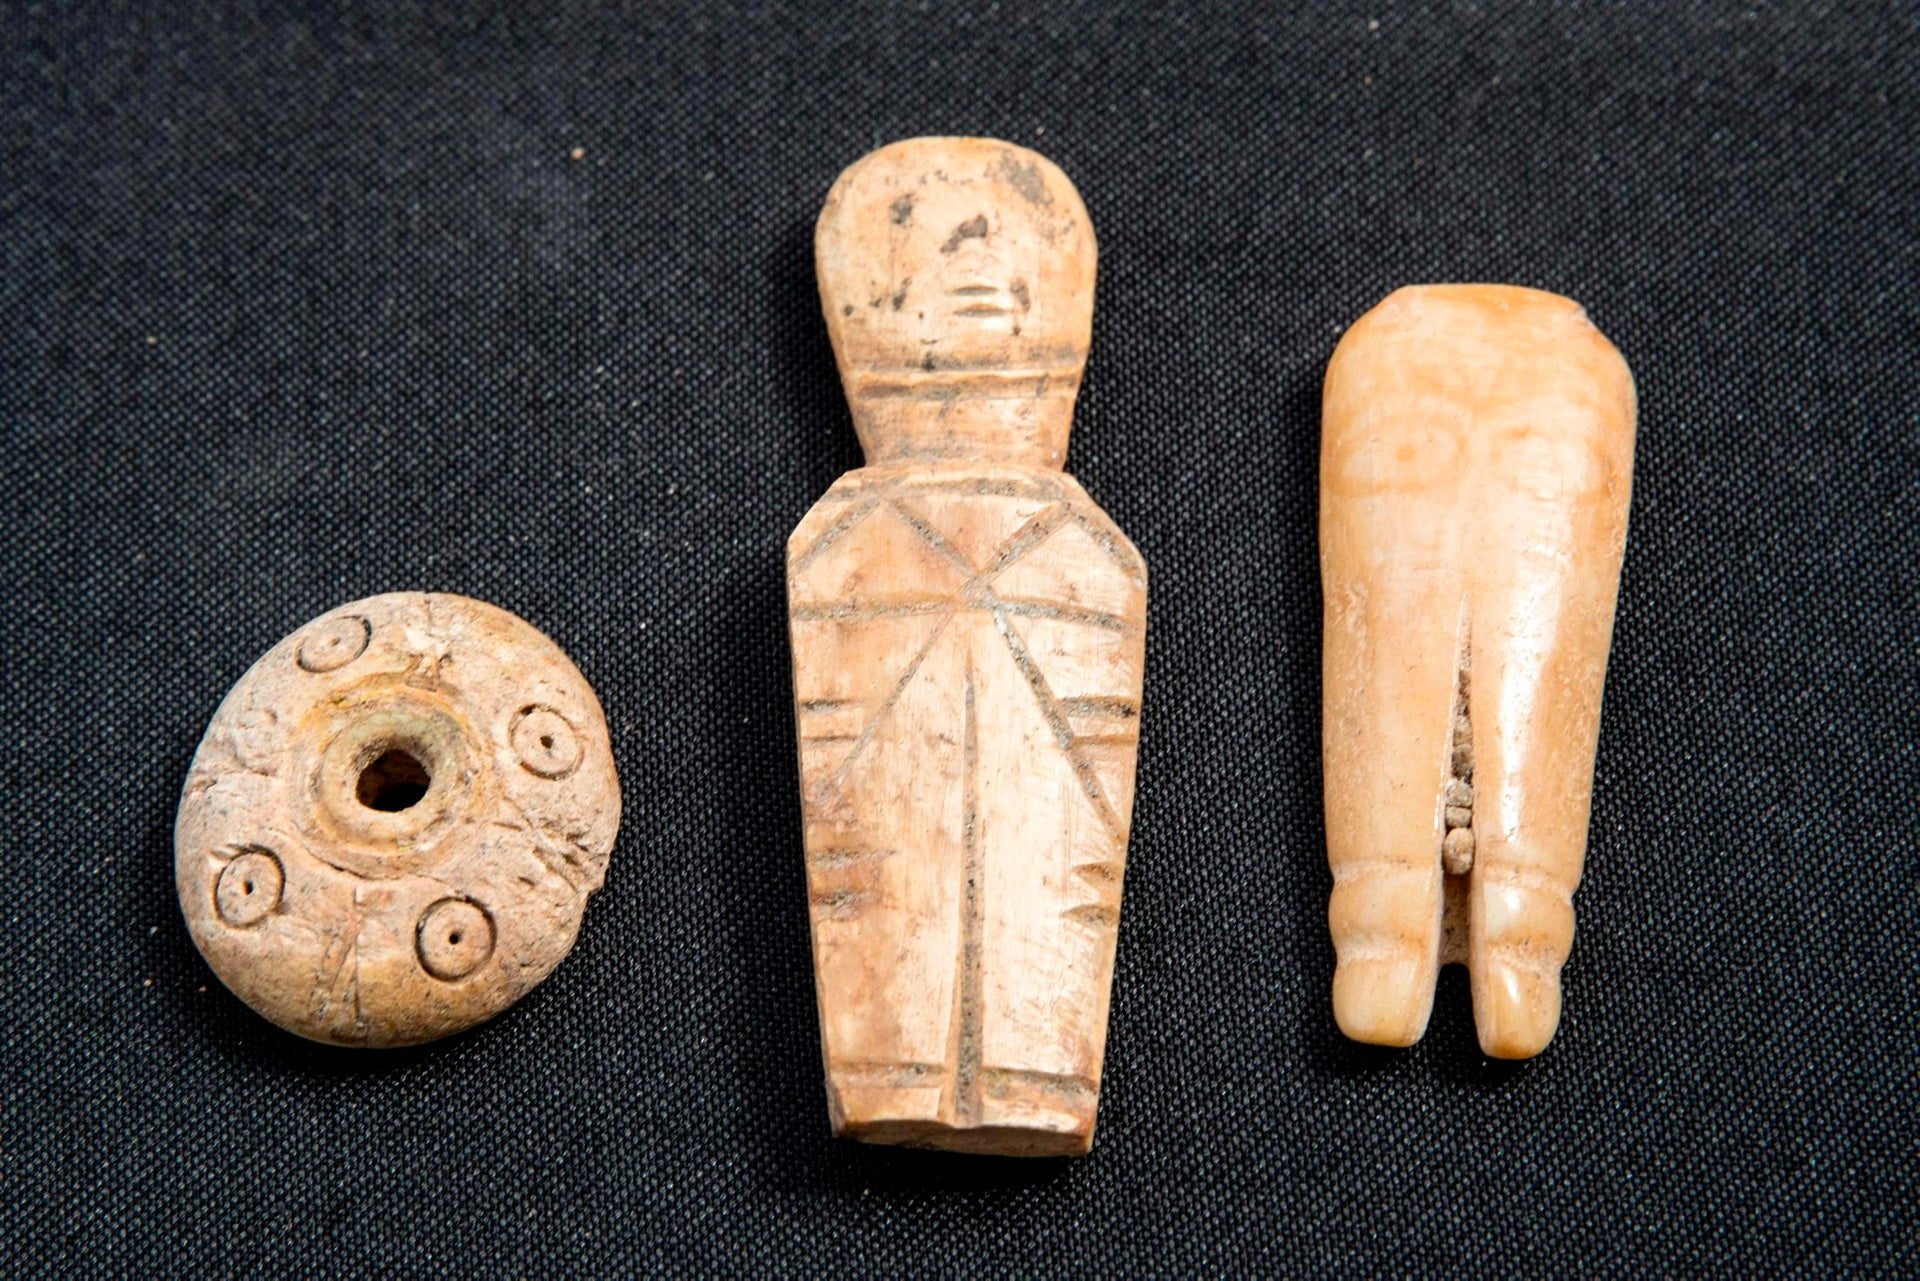 A picture taken on April 26, 2017, shows artifacts, discovered during the renovation of the ancient harbour of Caesarea, on display during a press conference in the Israeli Mediterranean town of Caesarea.